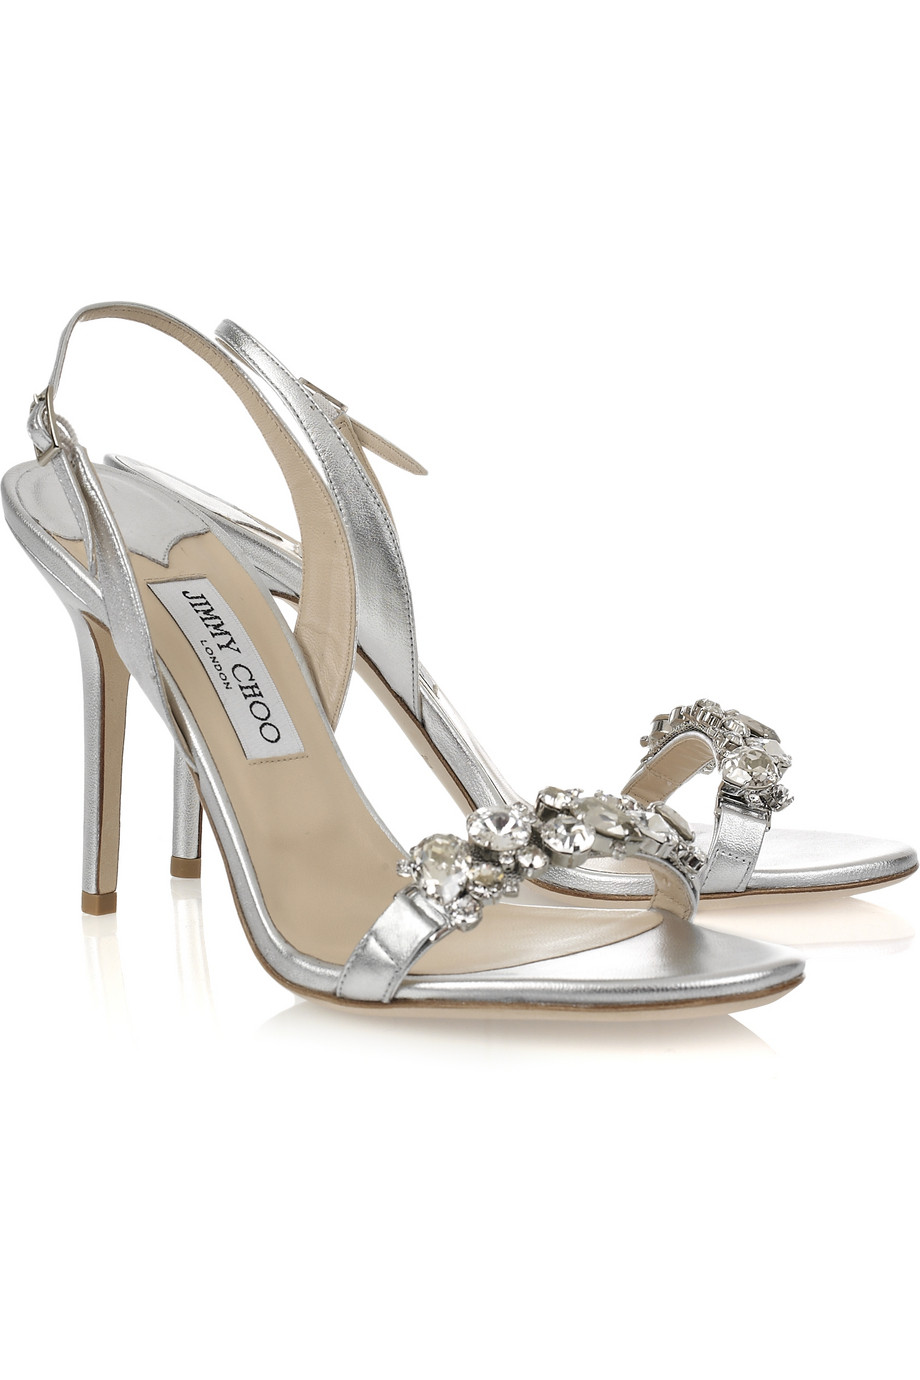 Clearance Jimmy Choo Sandals - Shoes Jimmy Choo Silver Lotus Crystal Embellished Leather Sandals Other